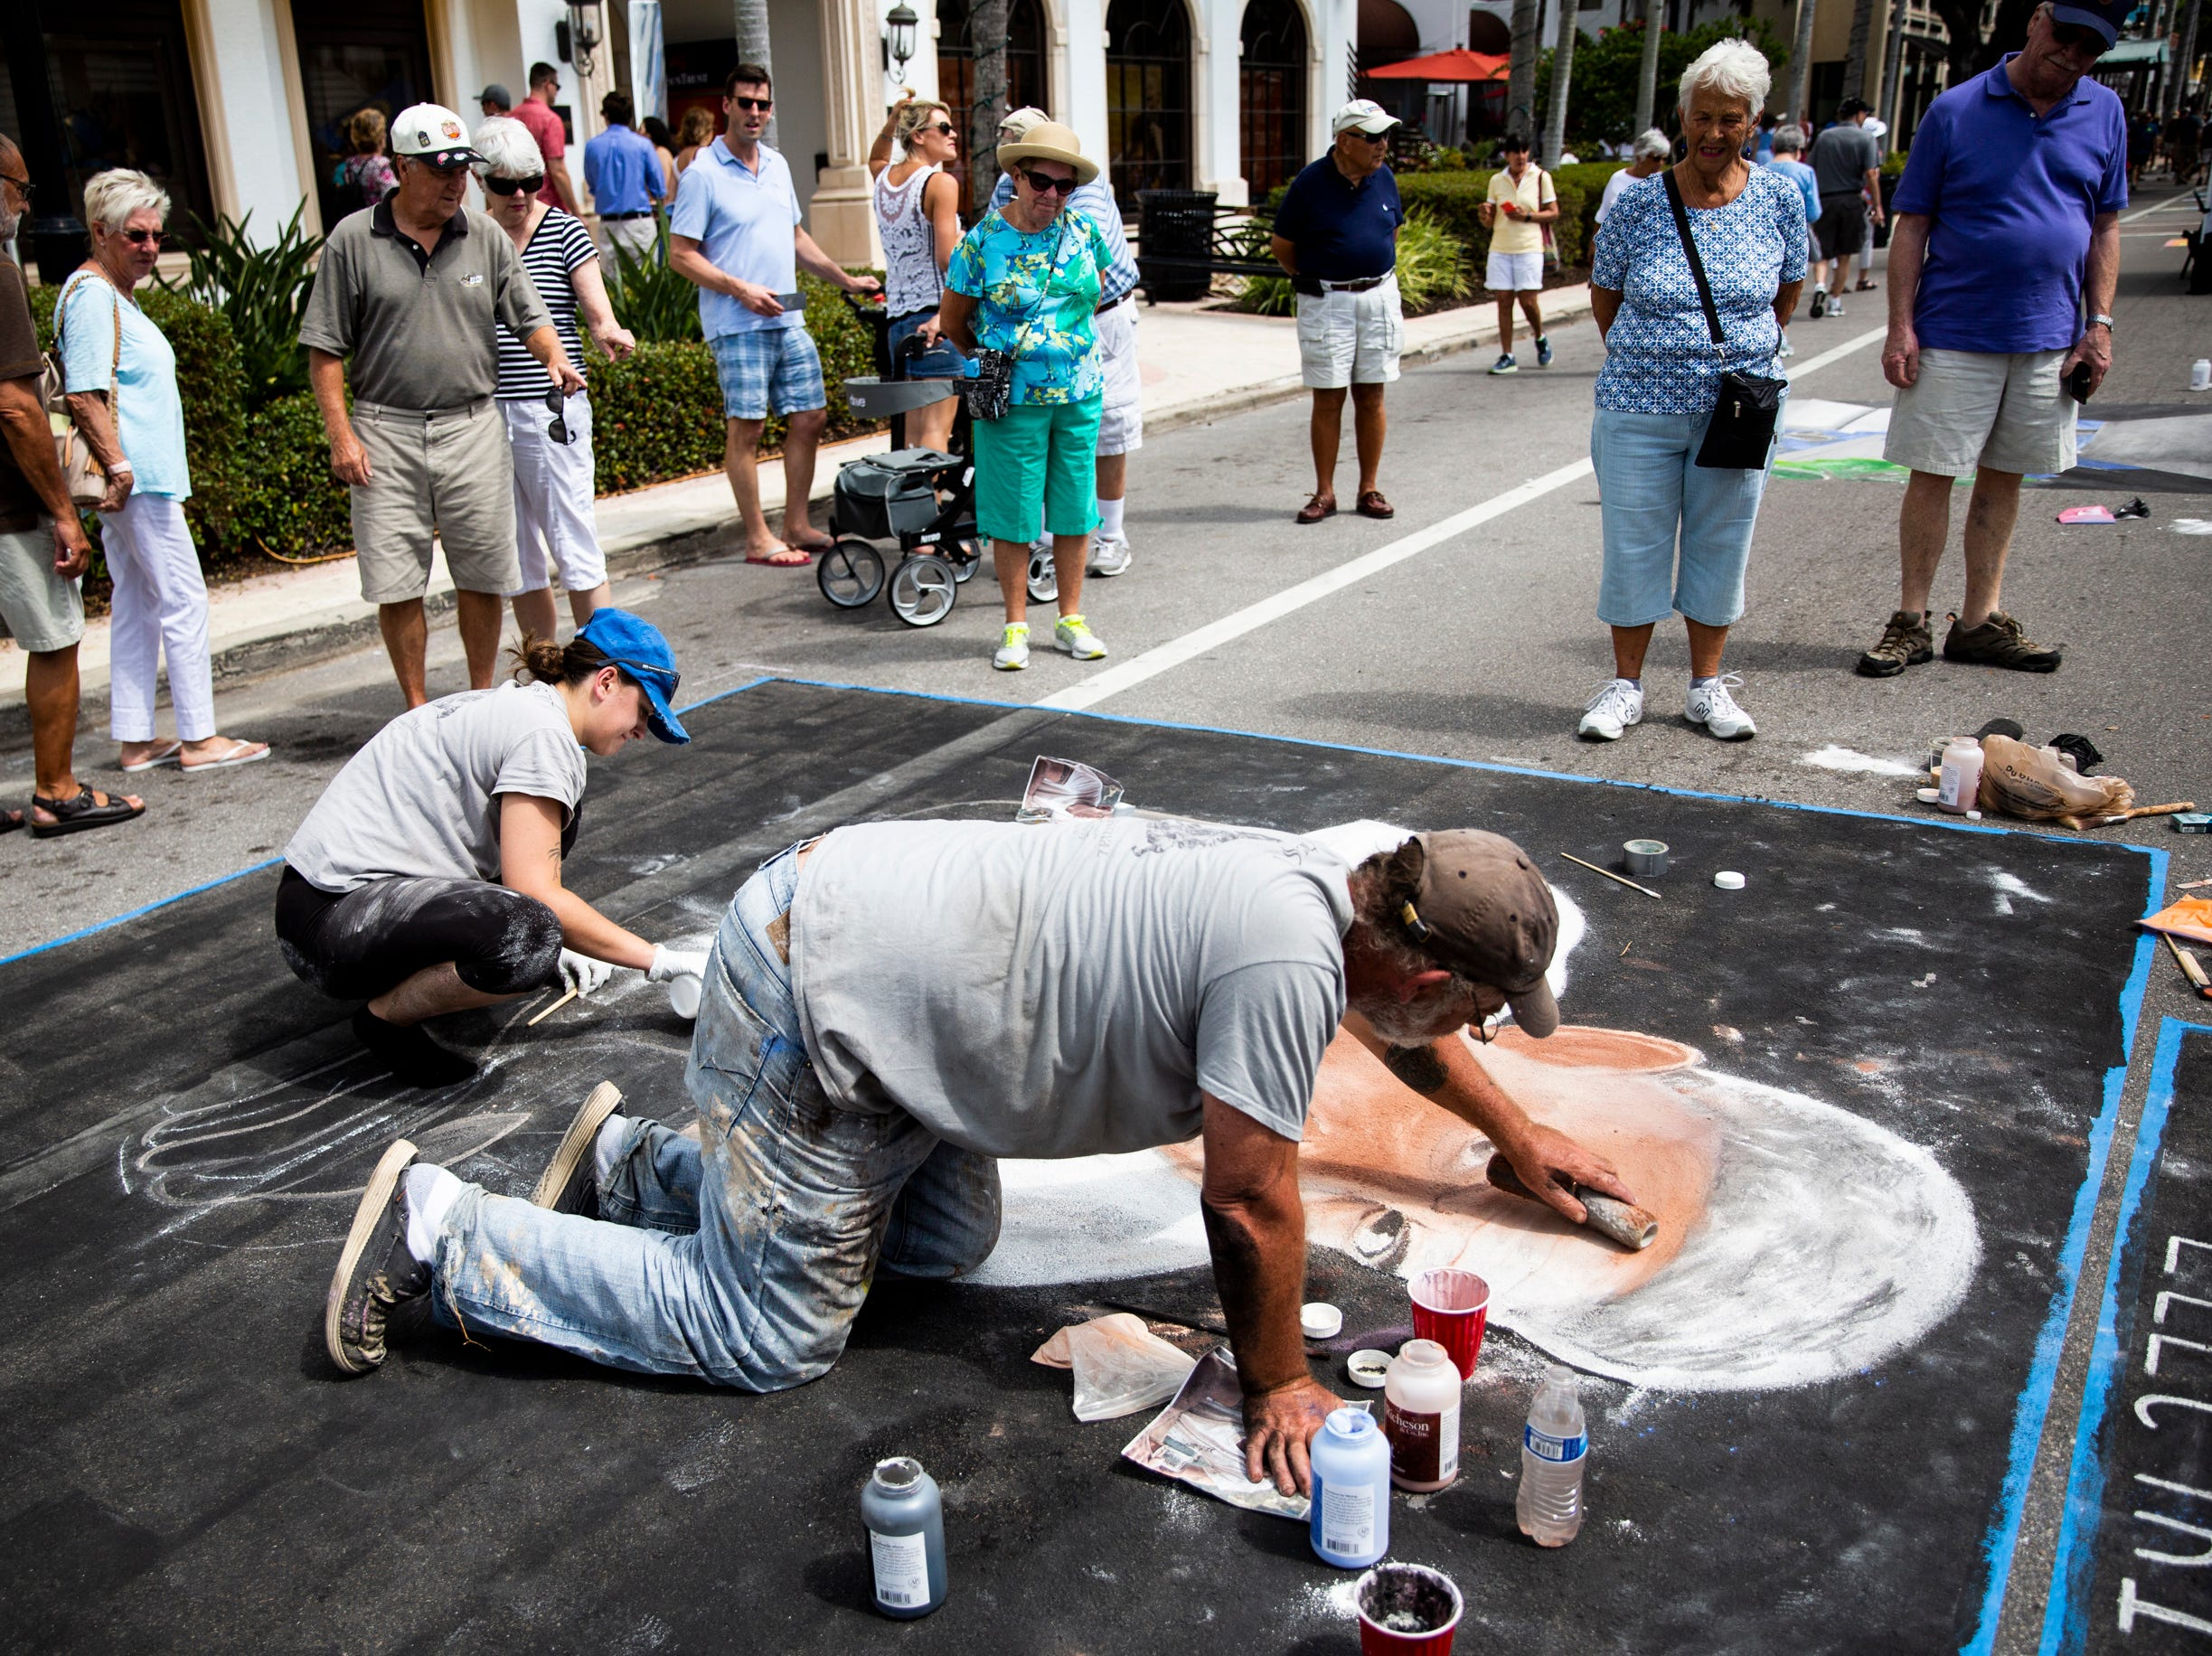 A crowd gathers to watch Erik Schlake and his daughter Allison Schlake work on a chalk portrait of Anthony Bourdain during the Naples Chalk Art festival on Fifth Avenue South on Saturday, March 9, 2019.